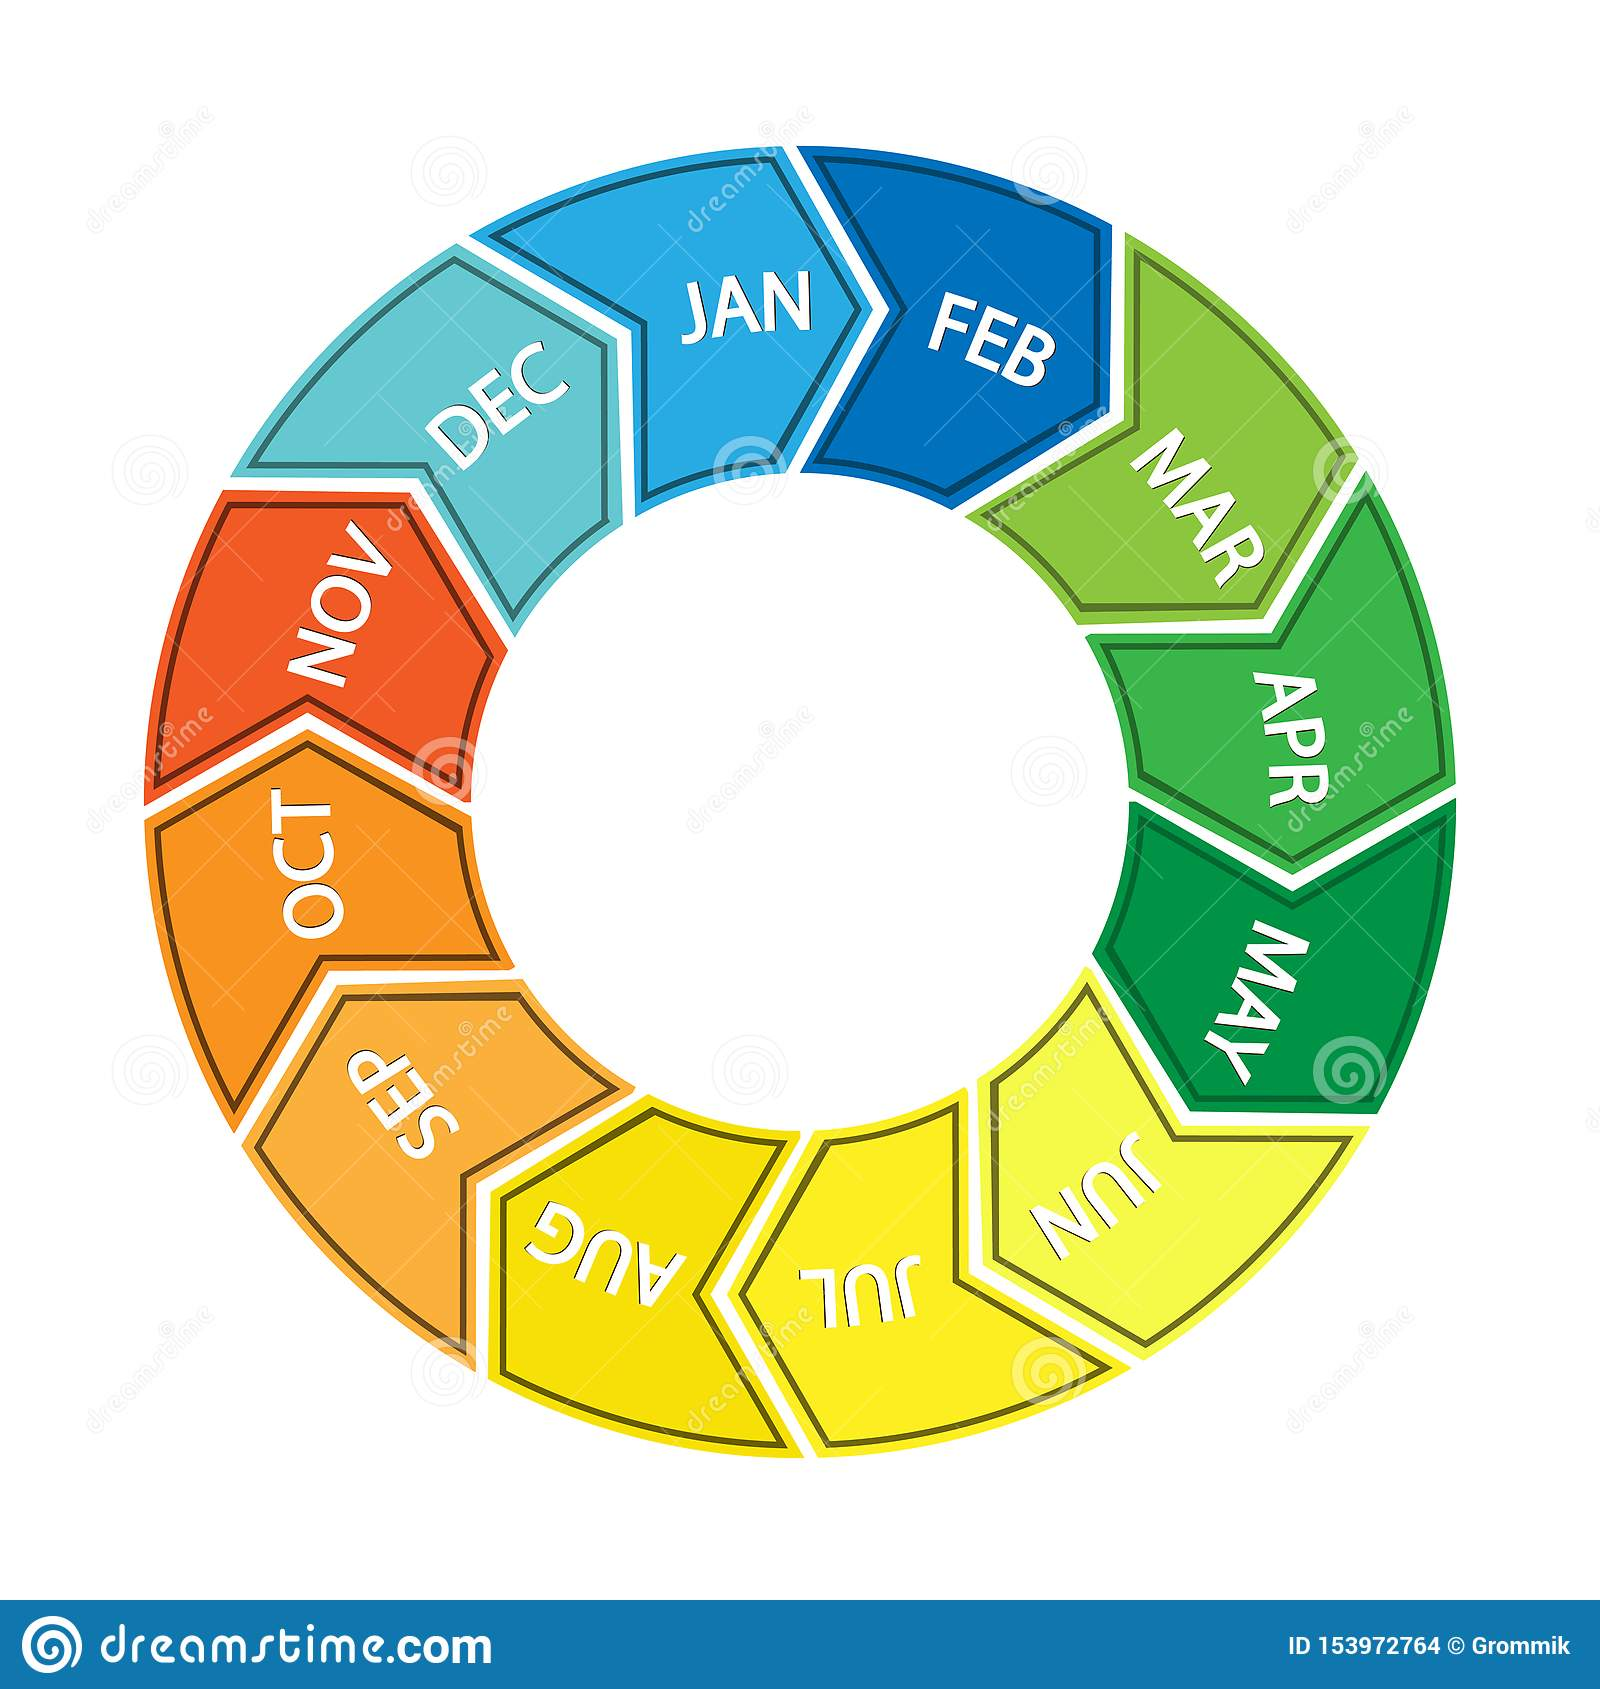 Pie Chart With Abbreviated Names Of Months Of The Year